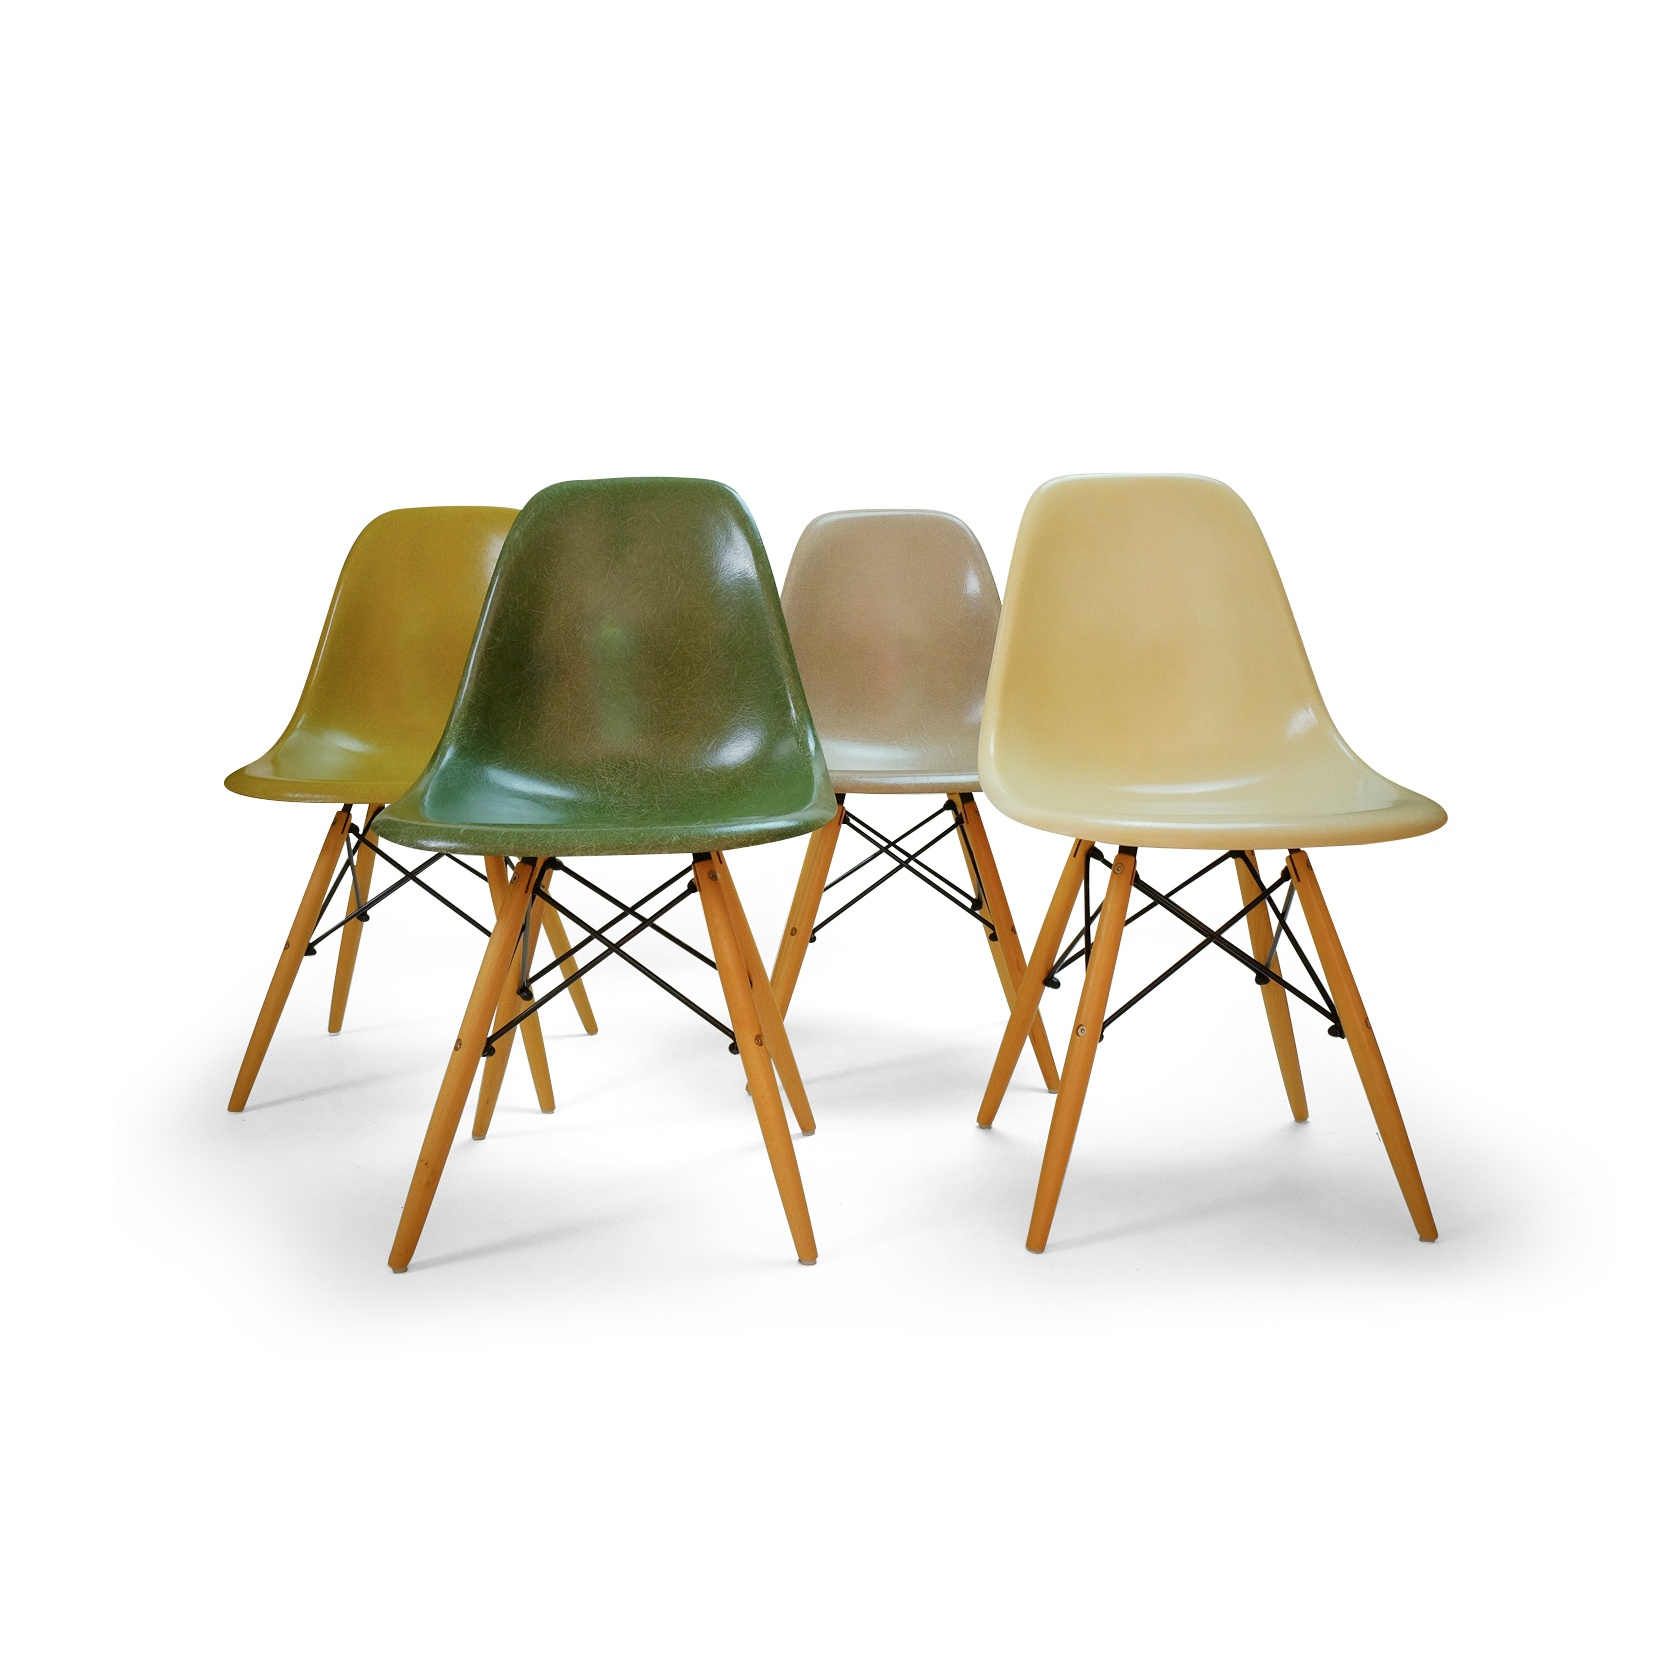 Vintage DSW Fiber Chairs by Charles & Eames for Herman Miller, Set of 4